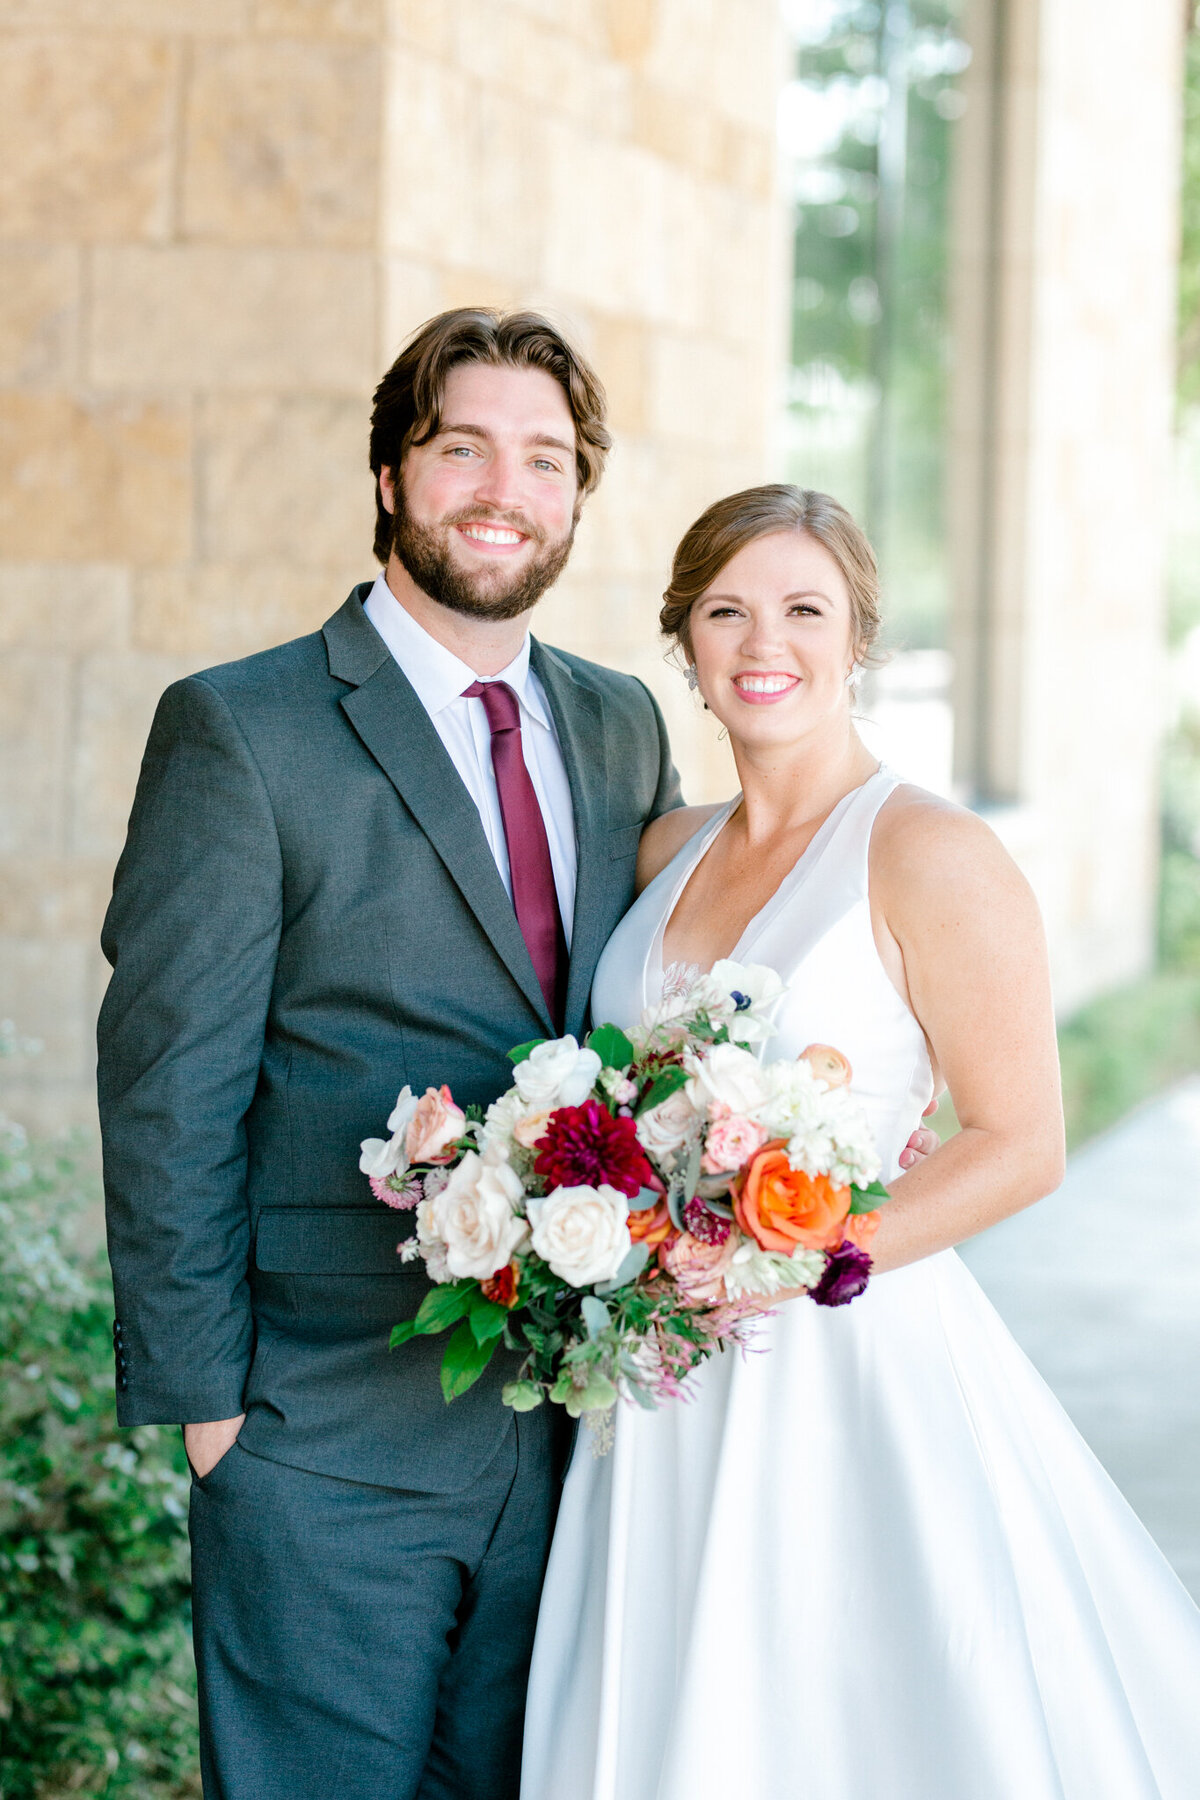 Kaylee & Michael's Wedding at Watermark Community Church | Dallas Wedding Photographer | Sami Kathryn Photography-45